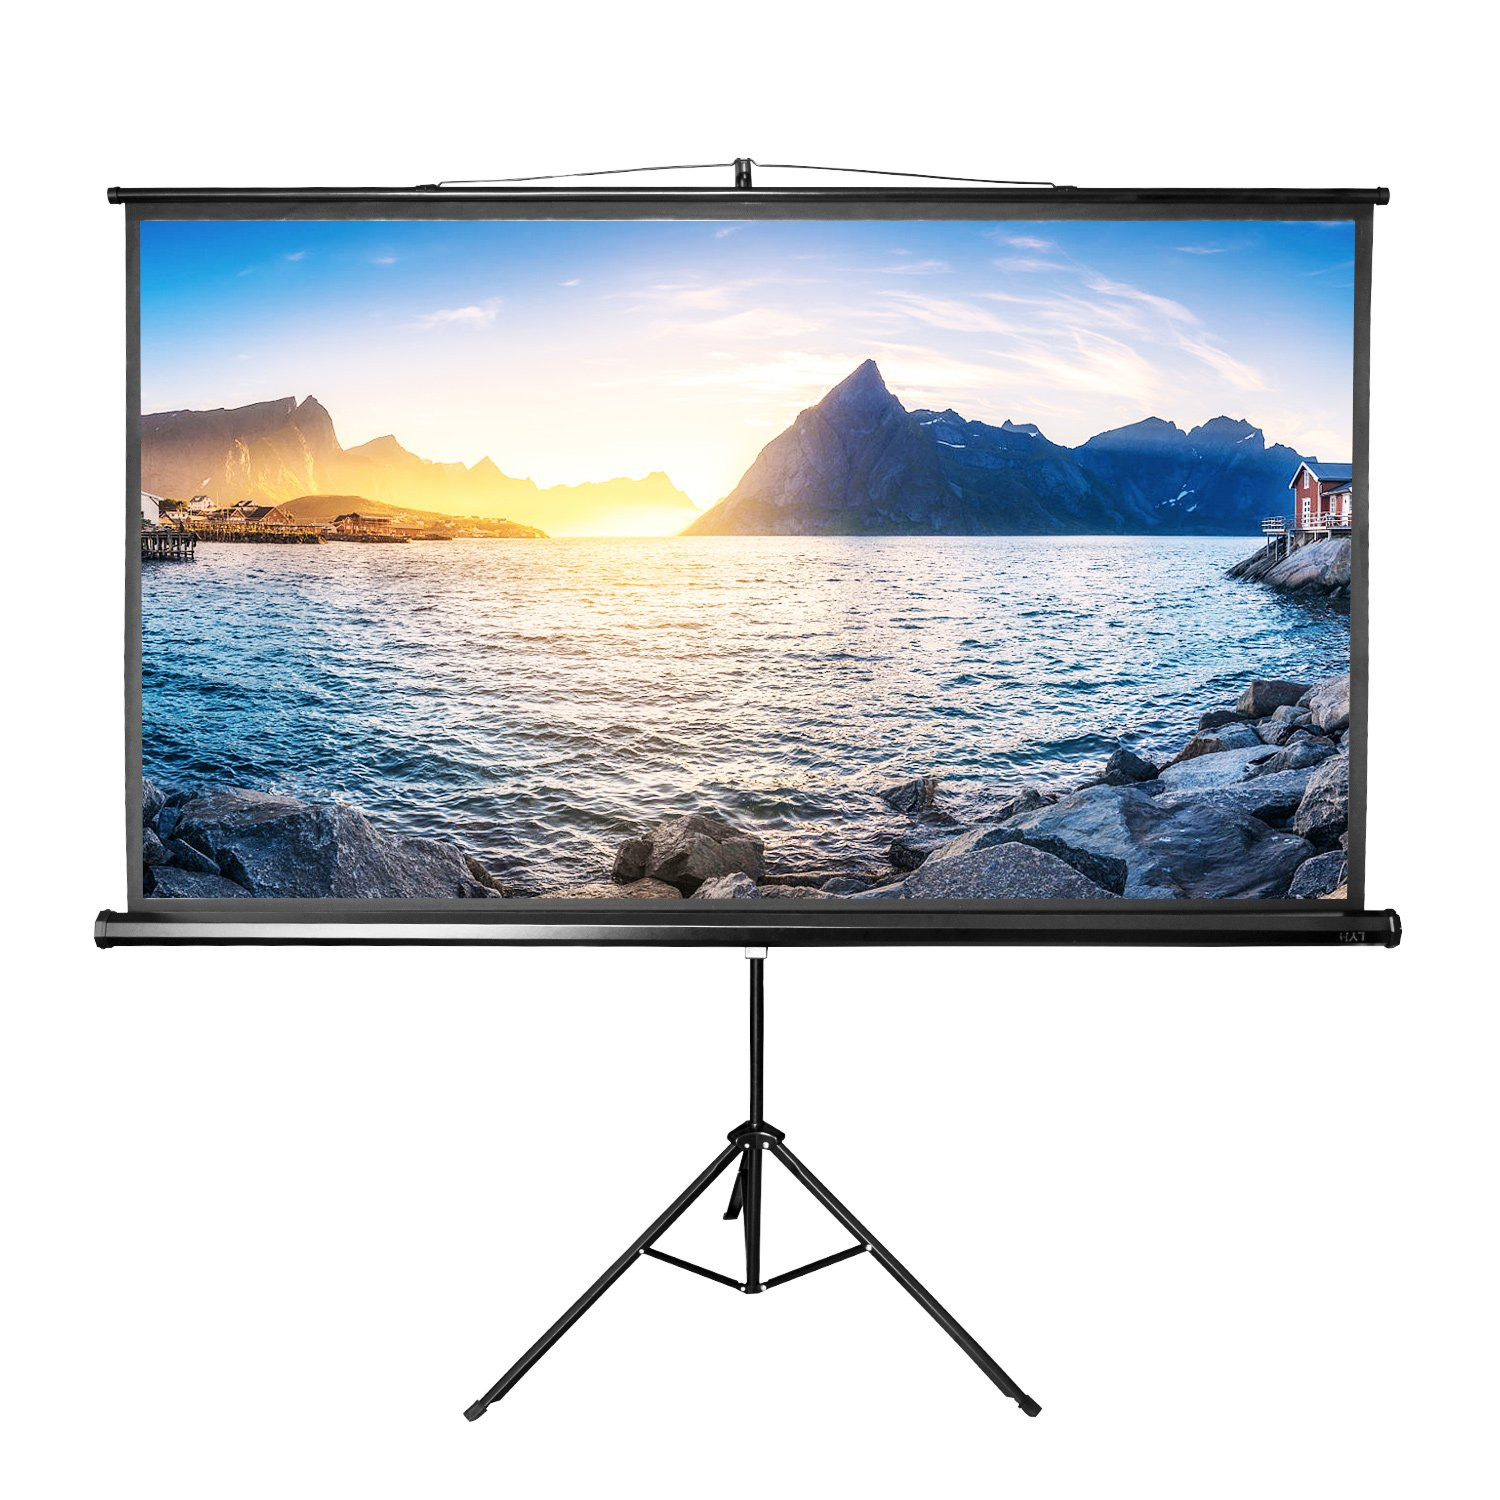 Projector Screen with Stand, LYH Indoor Outdoor Movie Screen 100 Inch Diagonal HD 16:9 with Premium Wrinkle-Free Design (Easy to Installation,160° Degree Viewing Angle) by LYH